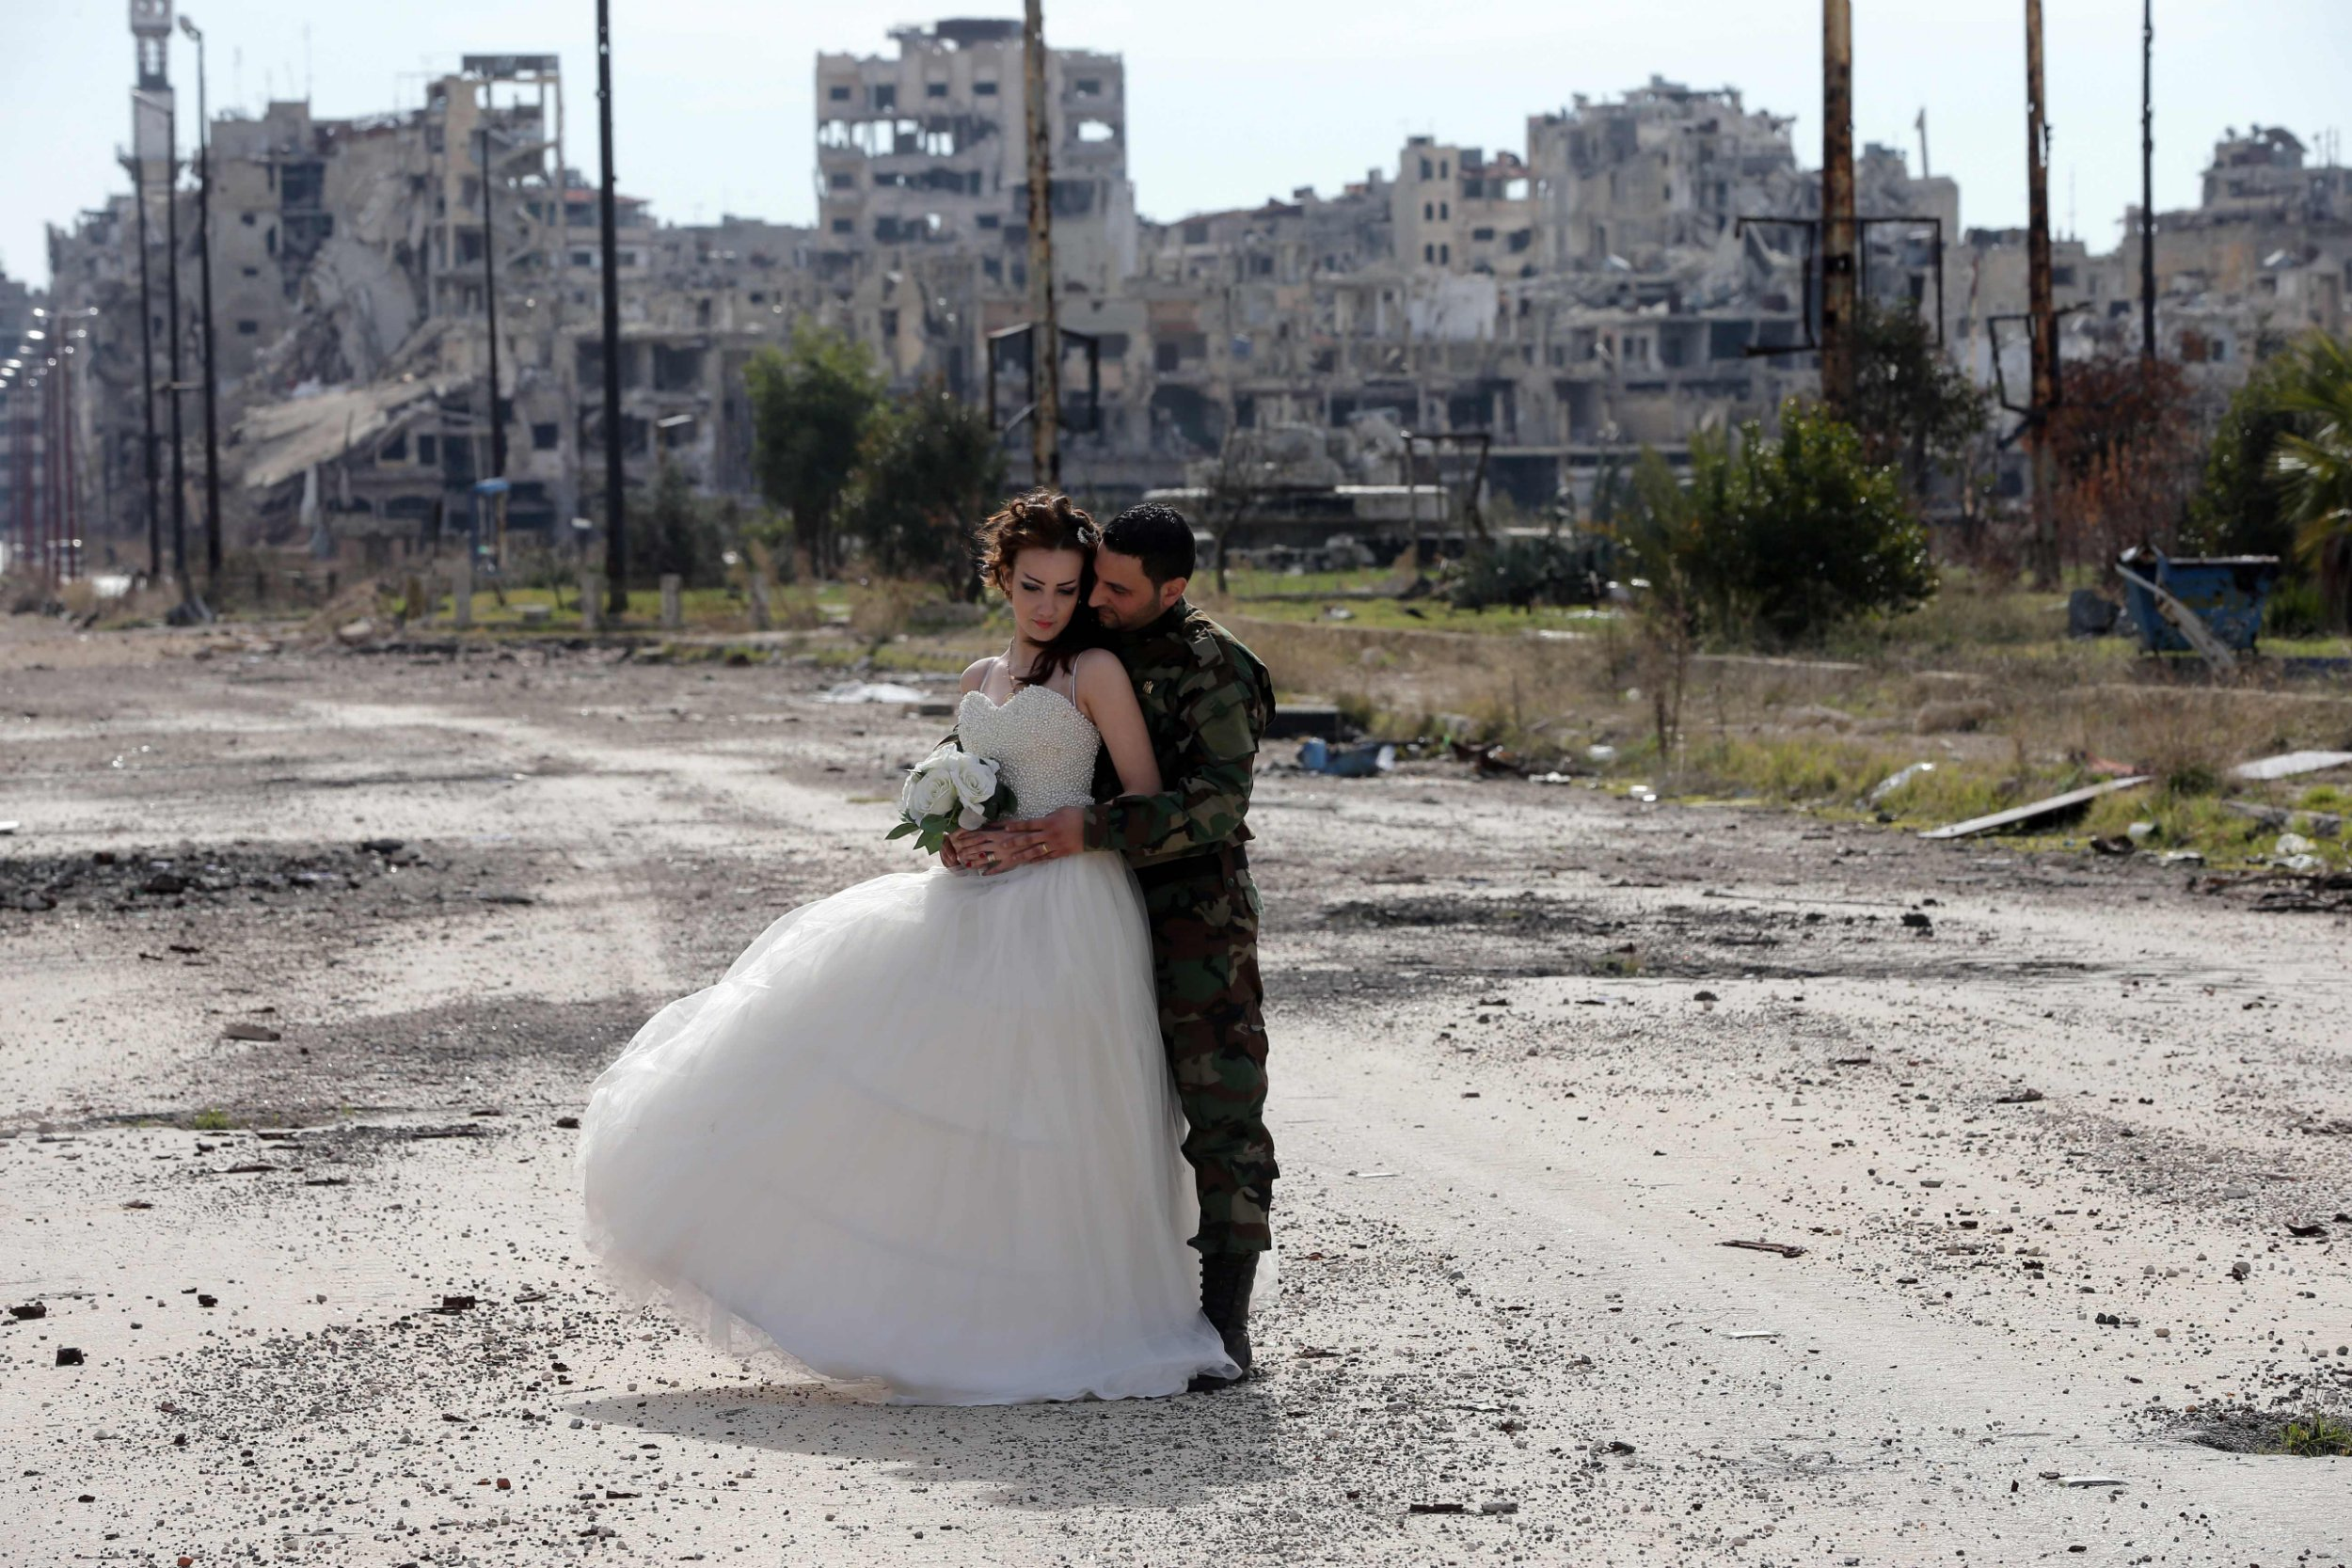 Newly-wed Syrian couple Nada Merhi,18, and Hassan Youssef,27, pose for a wedding picture amid heavily damaged buildings in the war ravaged city of Homs on February 5, 2016. A Syrian photographer thought of using the destruction of Homs to take pictures of newly wed couples to show that life is stronger than death. / AFP / JOSEPH EIDJOSEPH EID/AFP/Getty Images